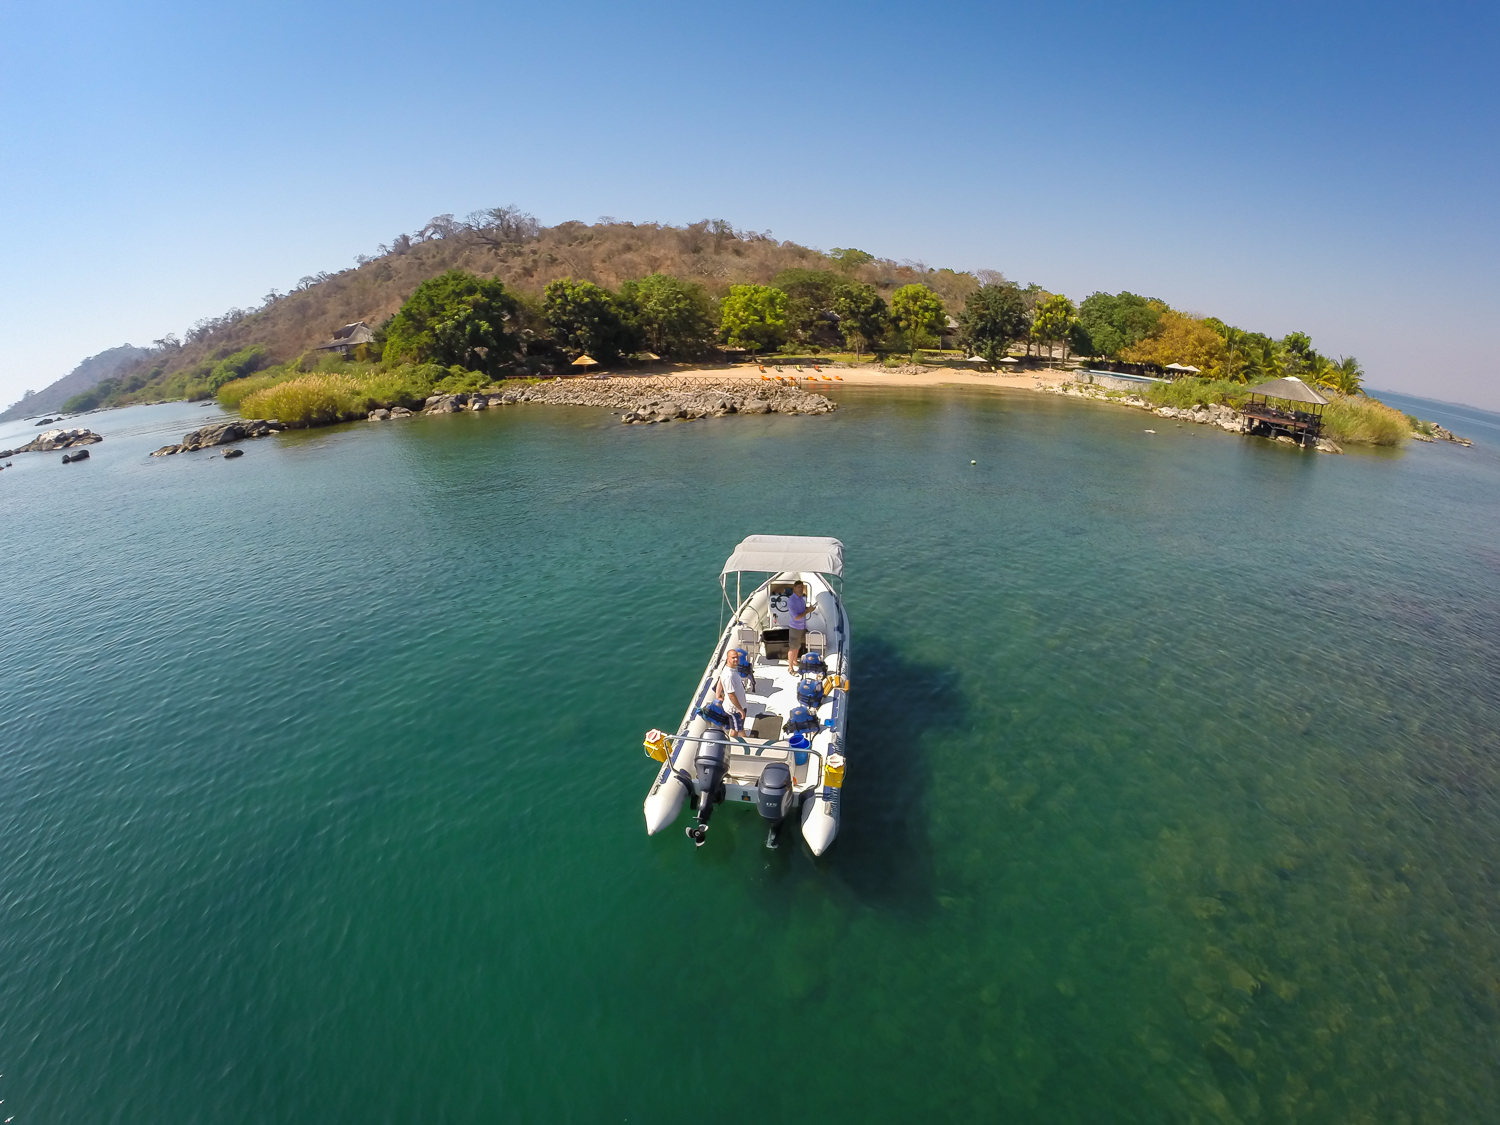 Aankomst Blue Zebra Islands Lodge Lake Malawi